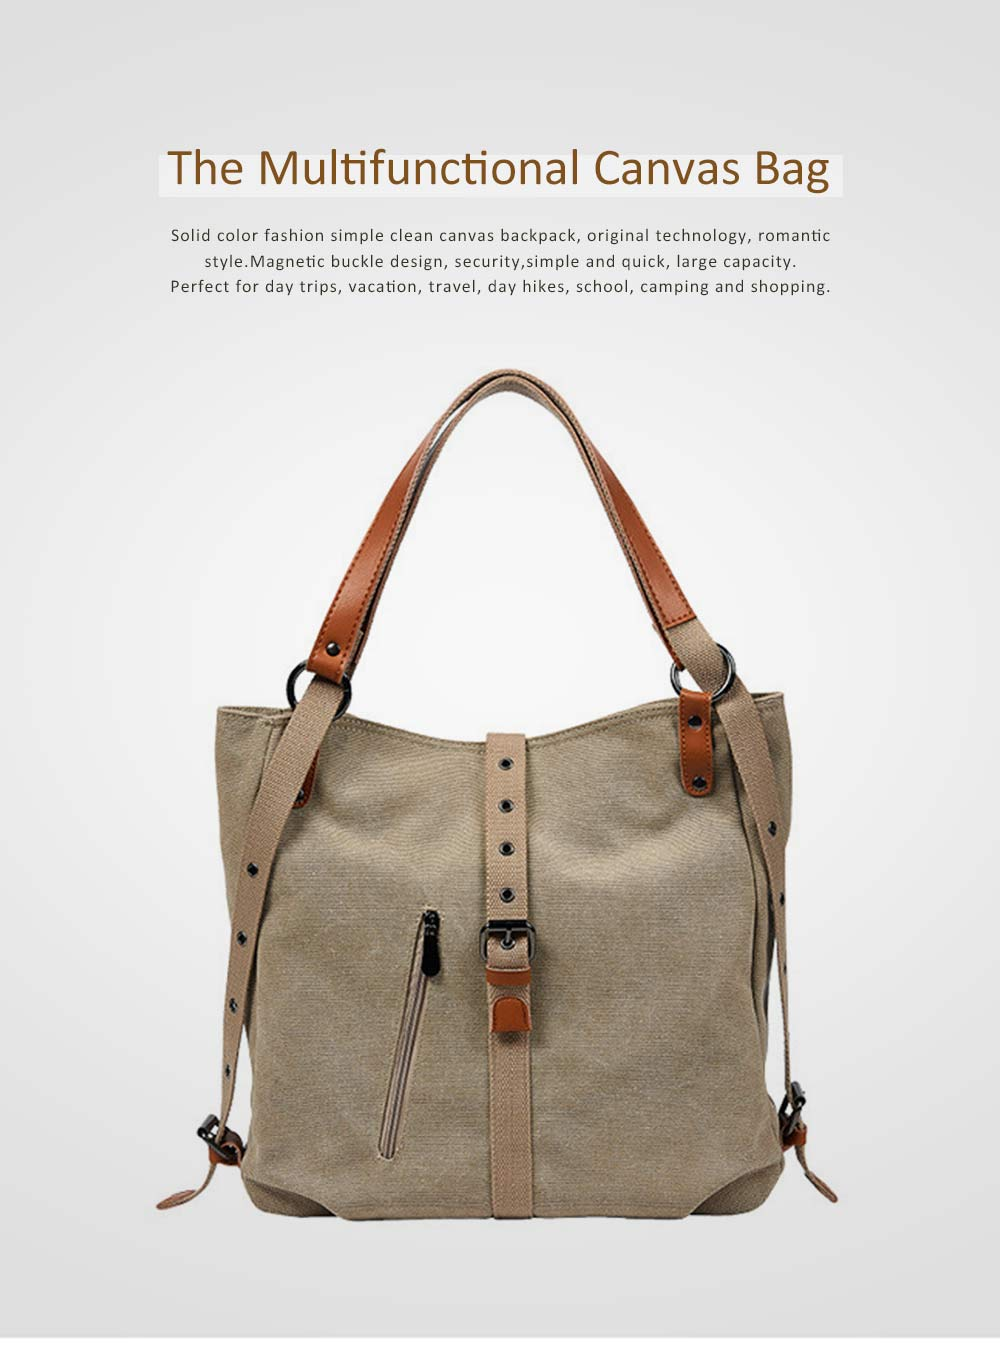 Multifunctional Backpack Shoulder Bag Fashion Casual Canvas Hobo Bags Women Accessories Large Capacity Travel Bag 0